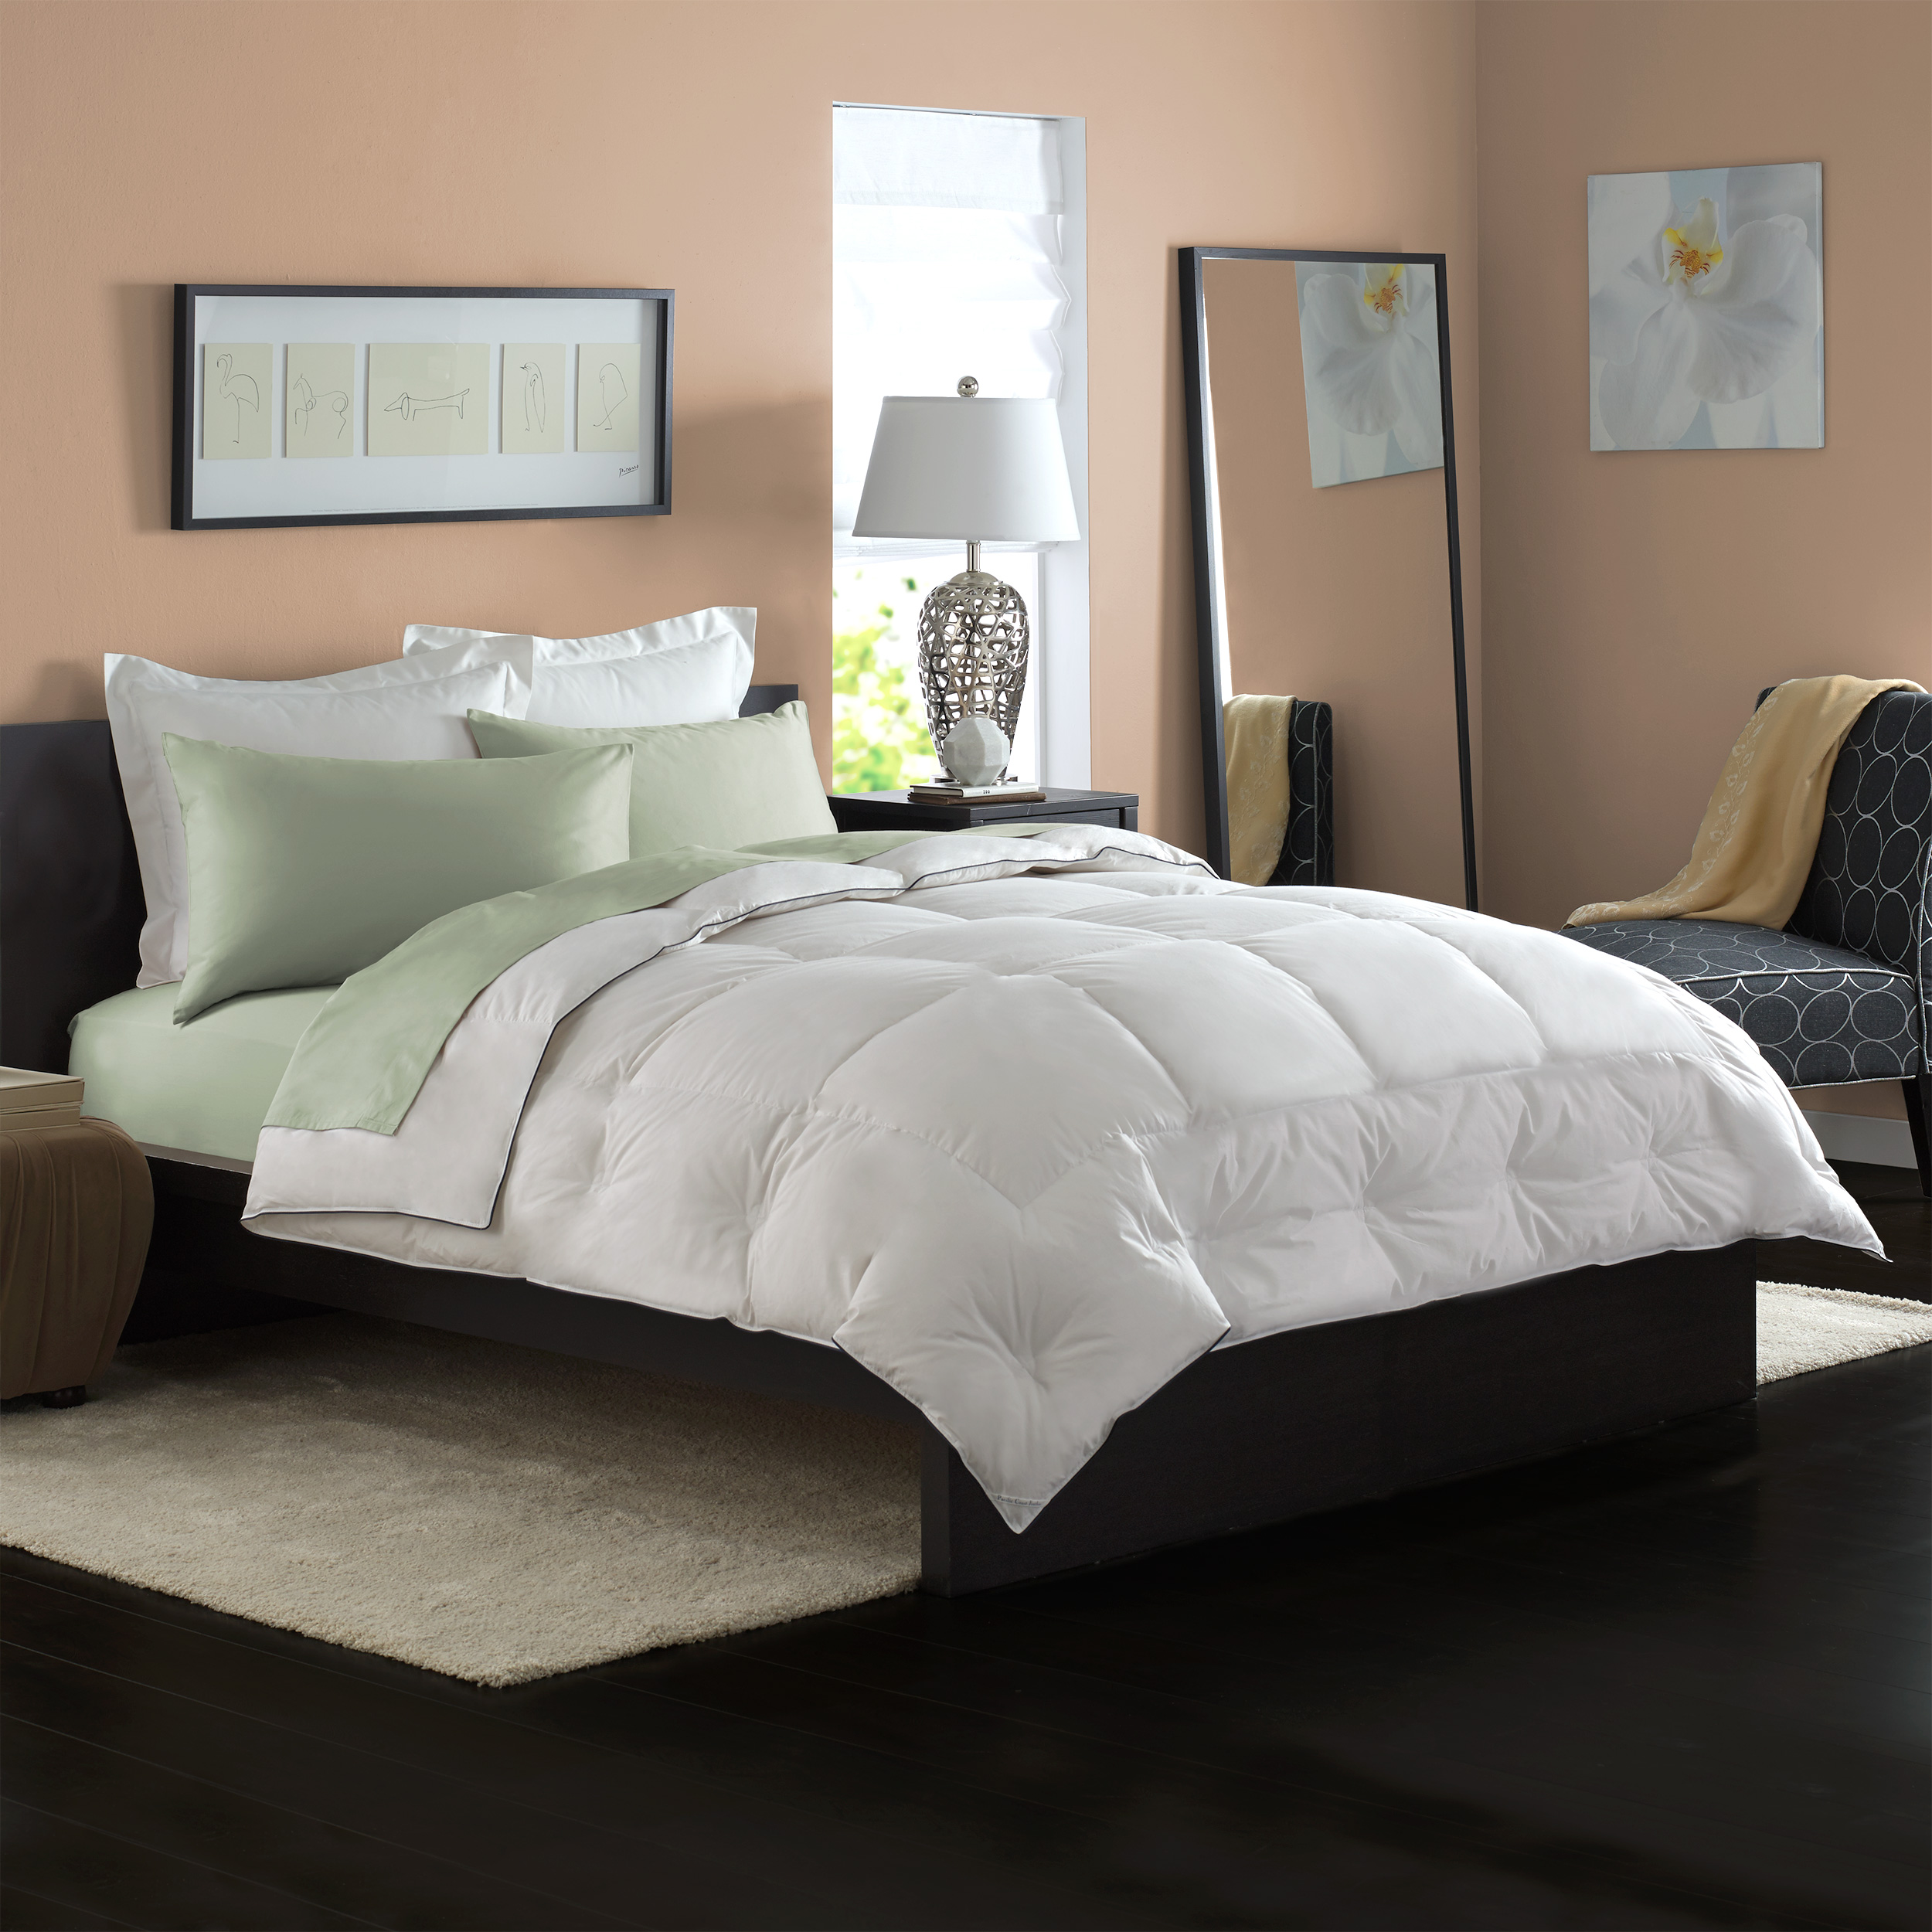 Shop AllerRest Down Comforter